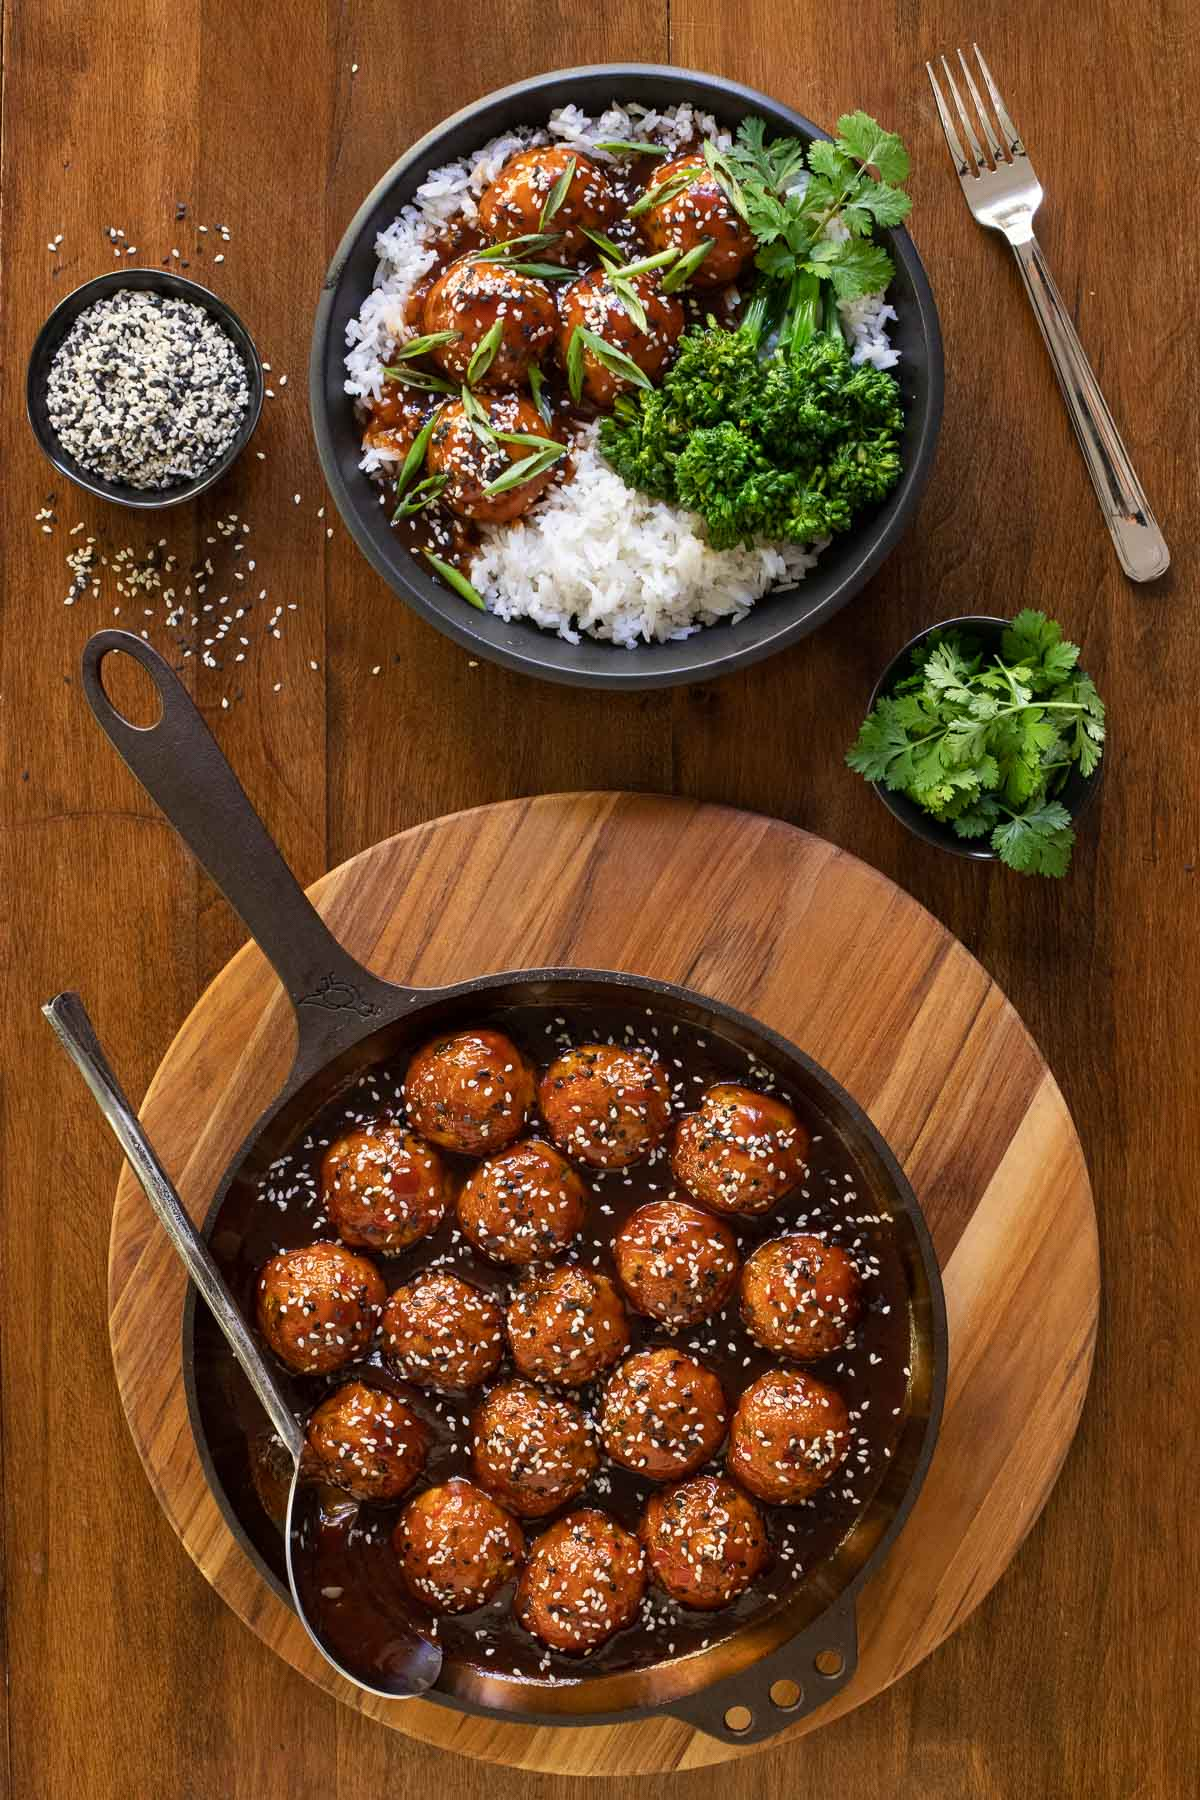 Vertical overhead photo of Huli Huli Chicken Meatballs in a cast iron skillet along side a serving dish with broccoli and rice.